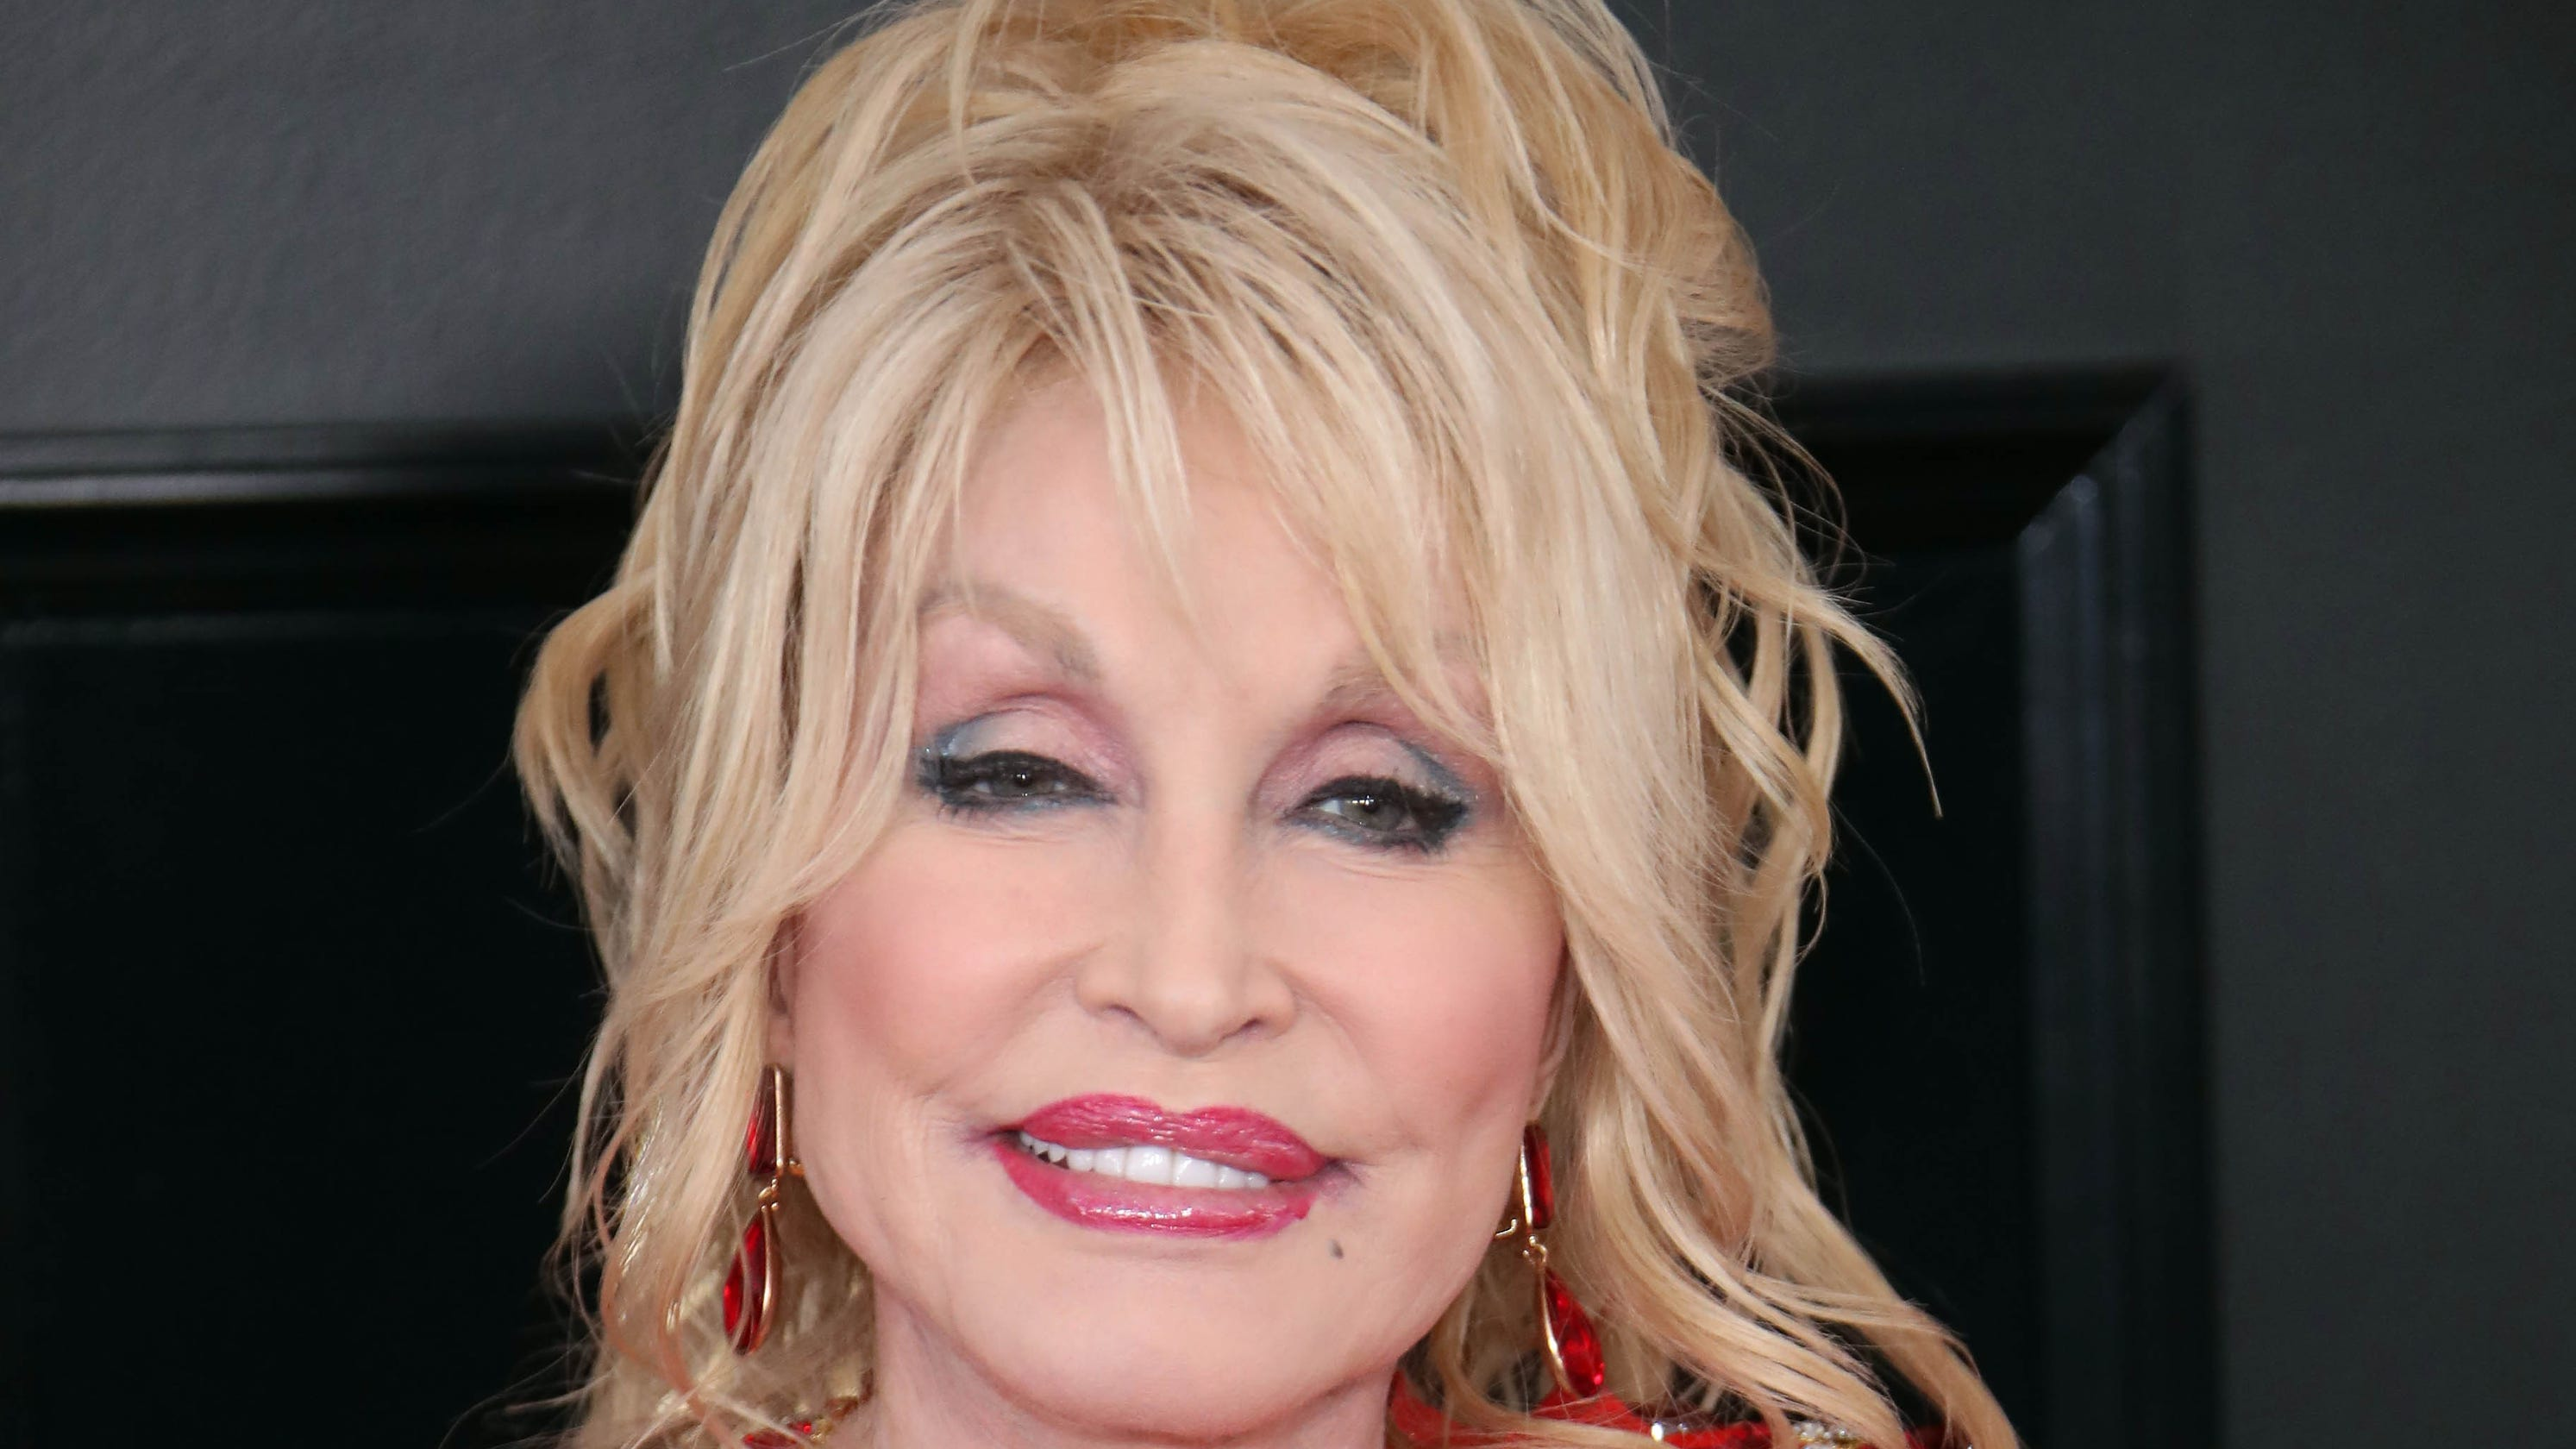 Dolly Parton Shines In Grammys 2019 Tribute With Miley Cyrus Katy Perry